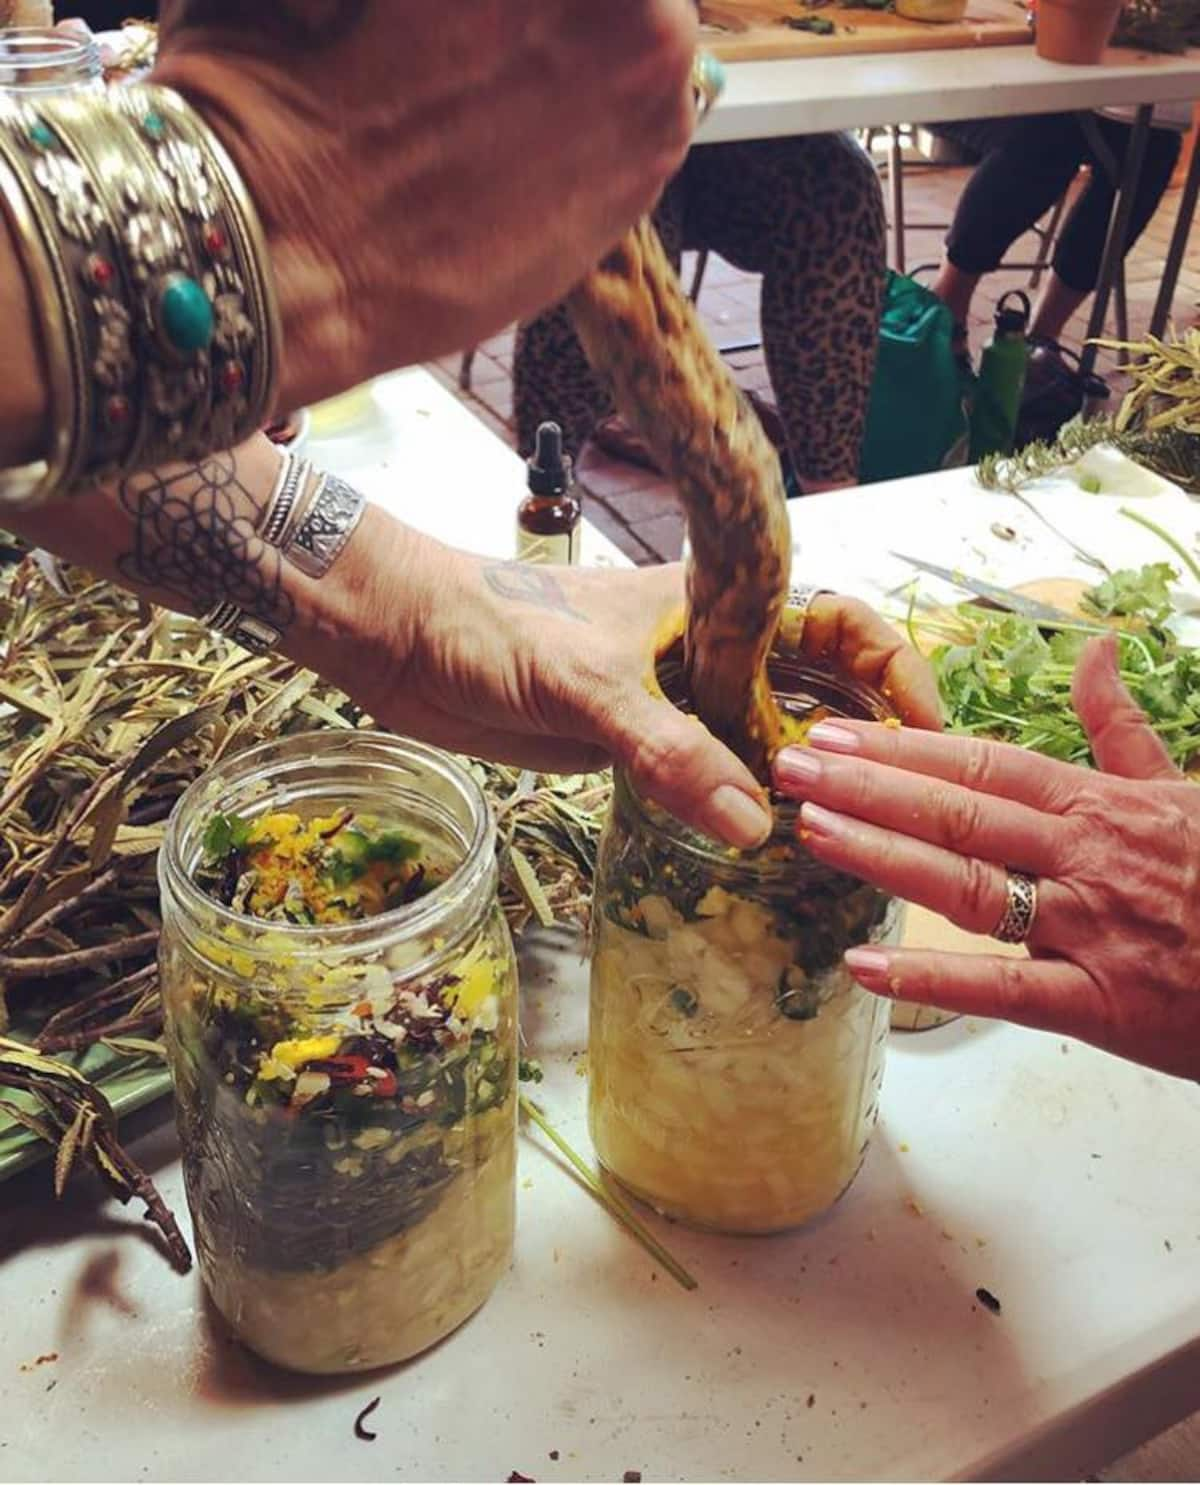 Making your own herbal medicine